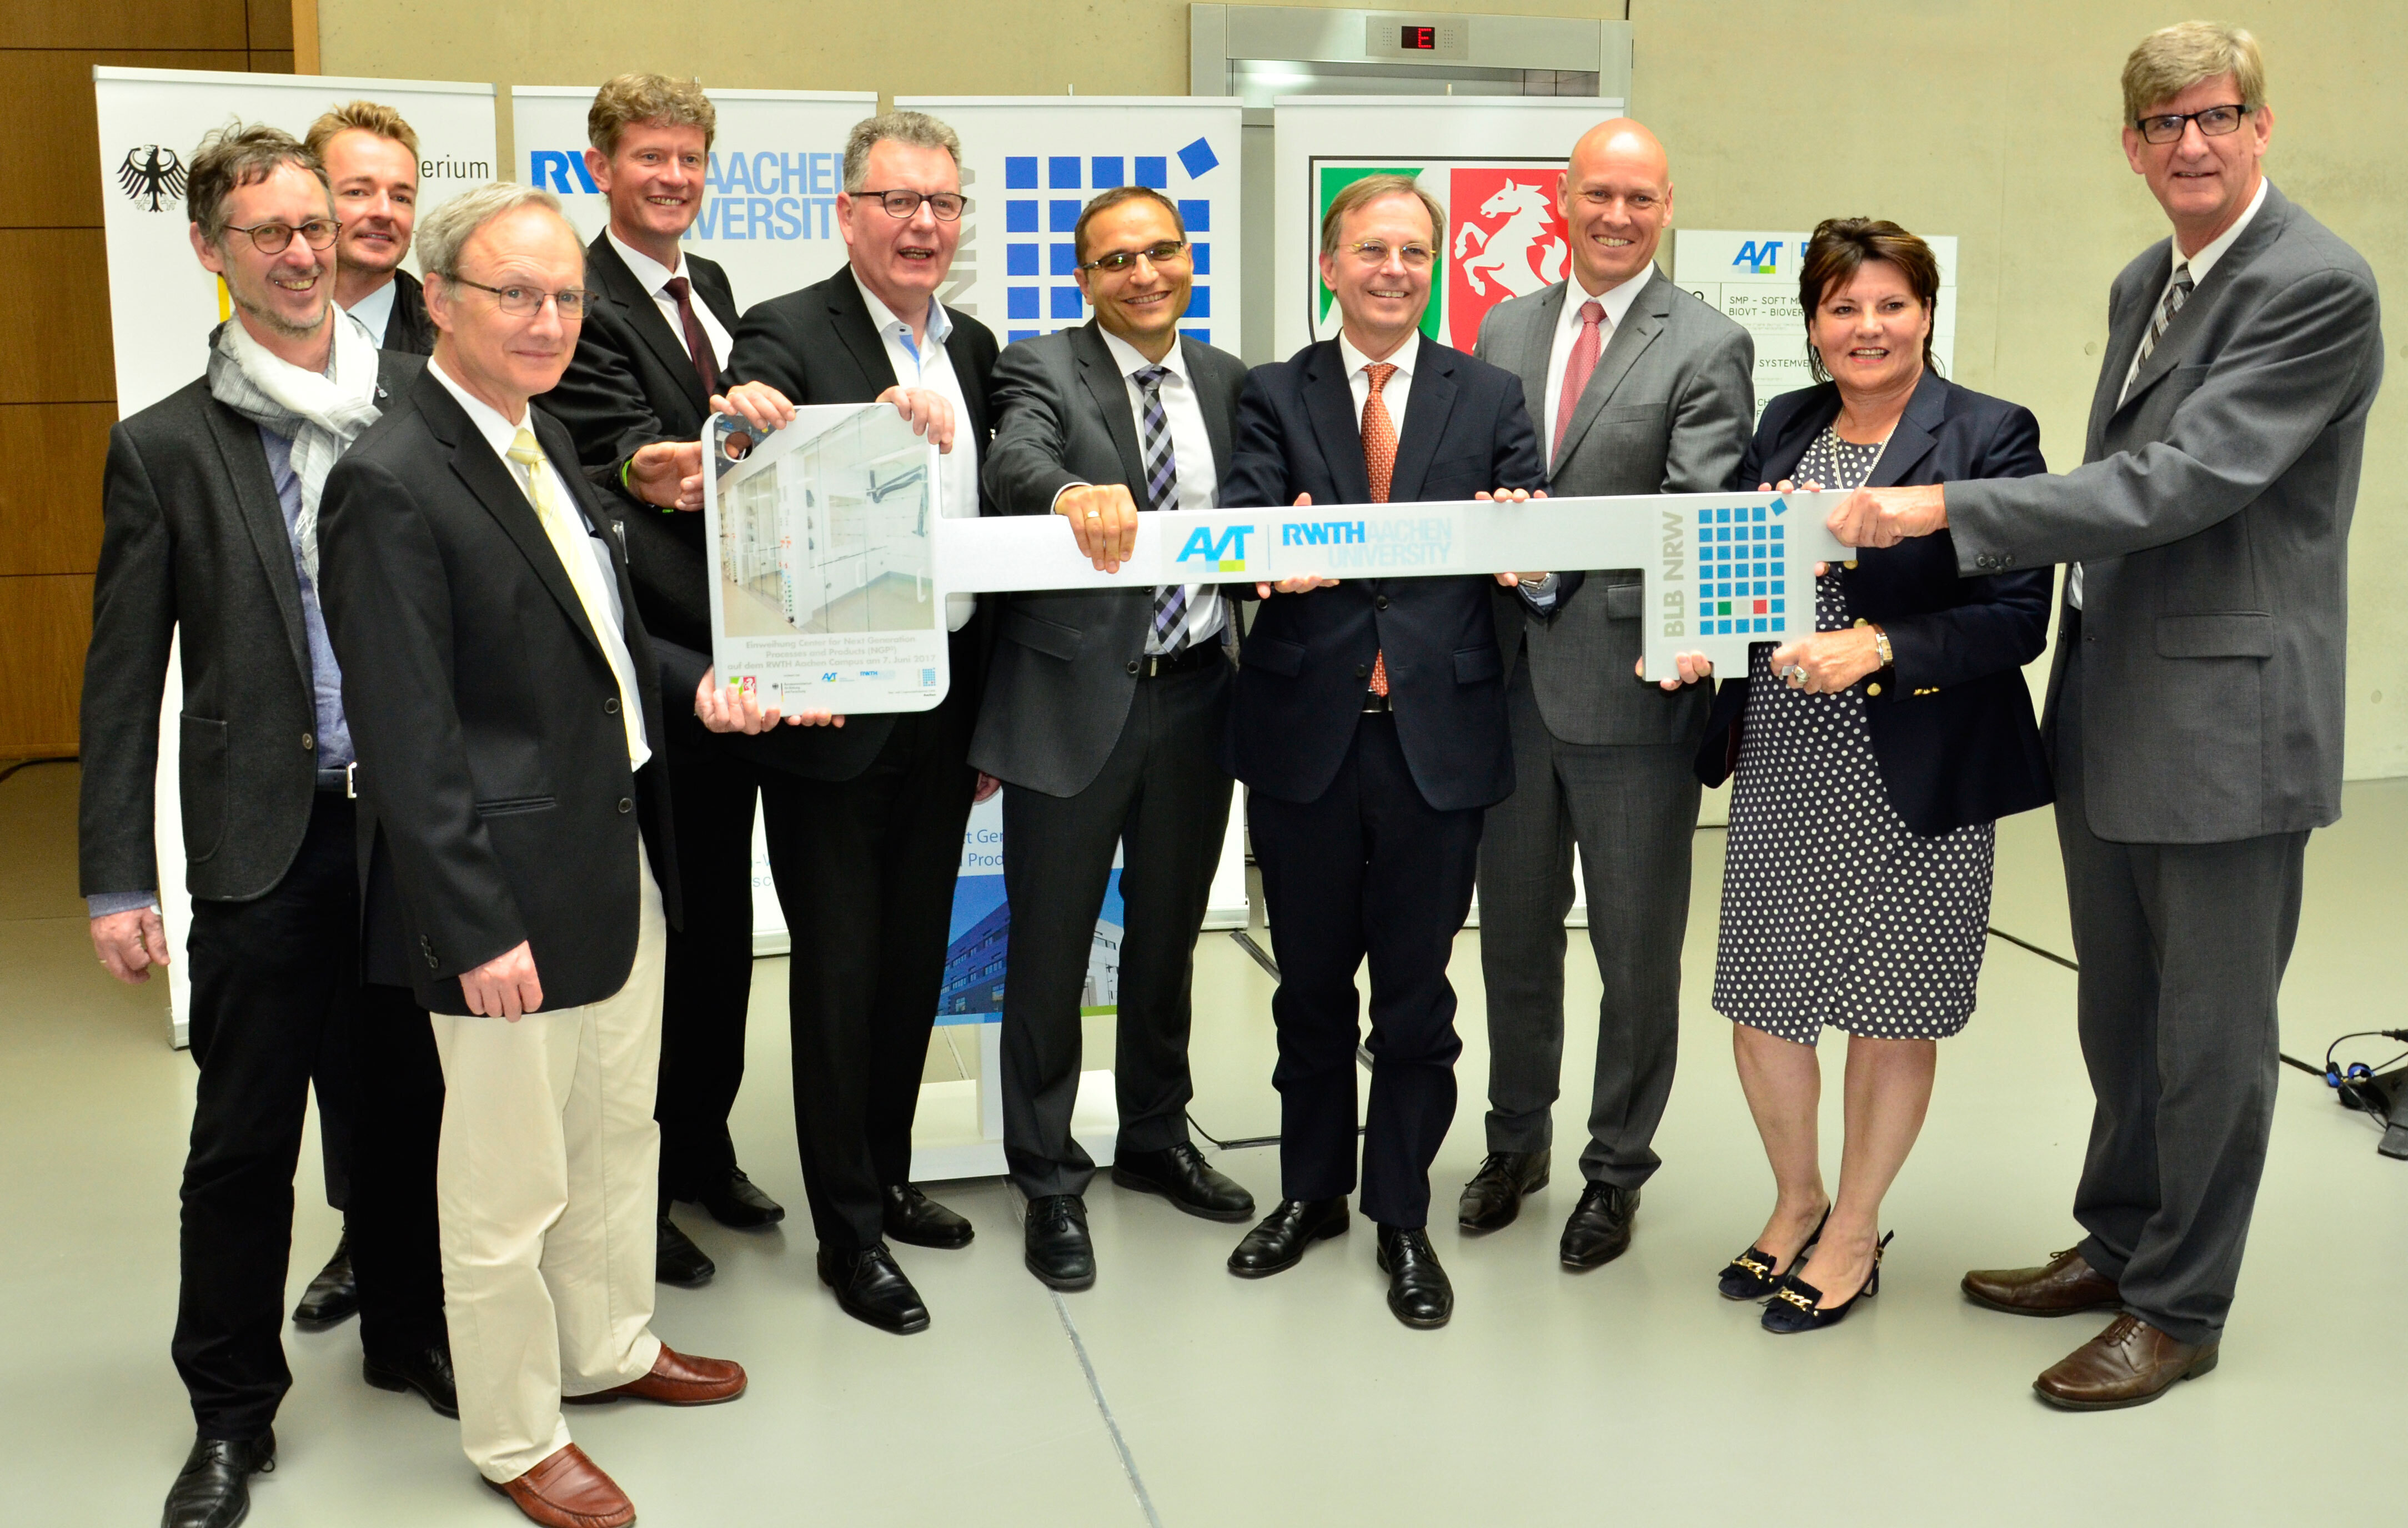 Ceremonial opening of new home for process engineering in Aachen through representatives of politics and science